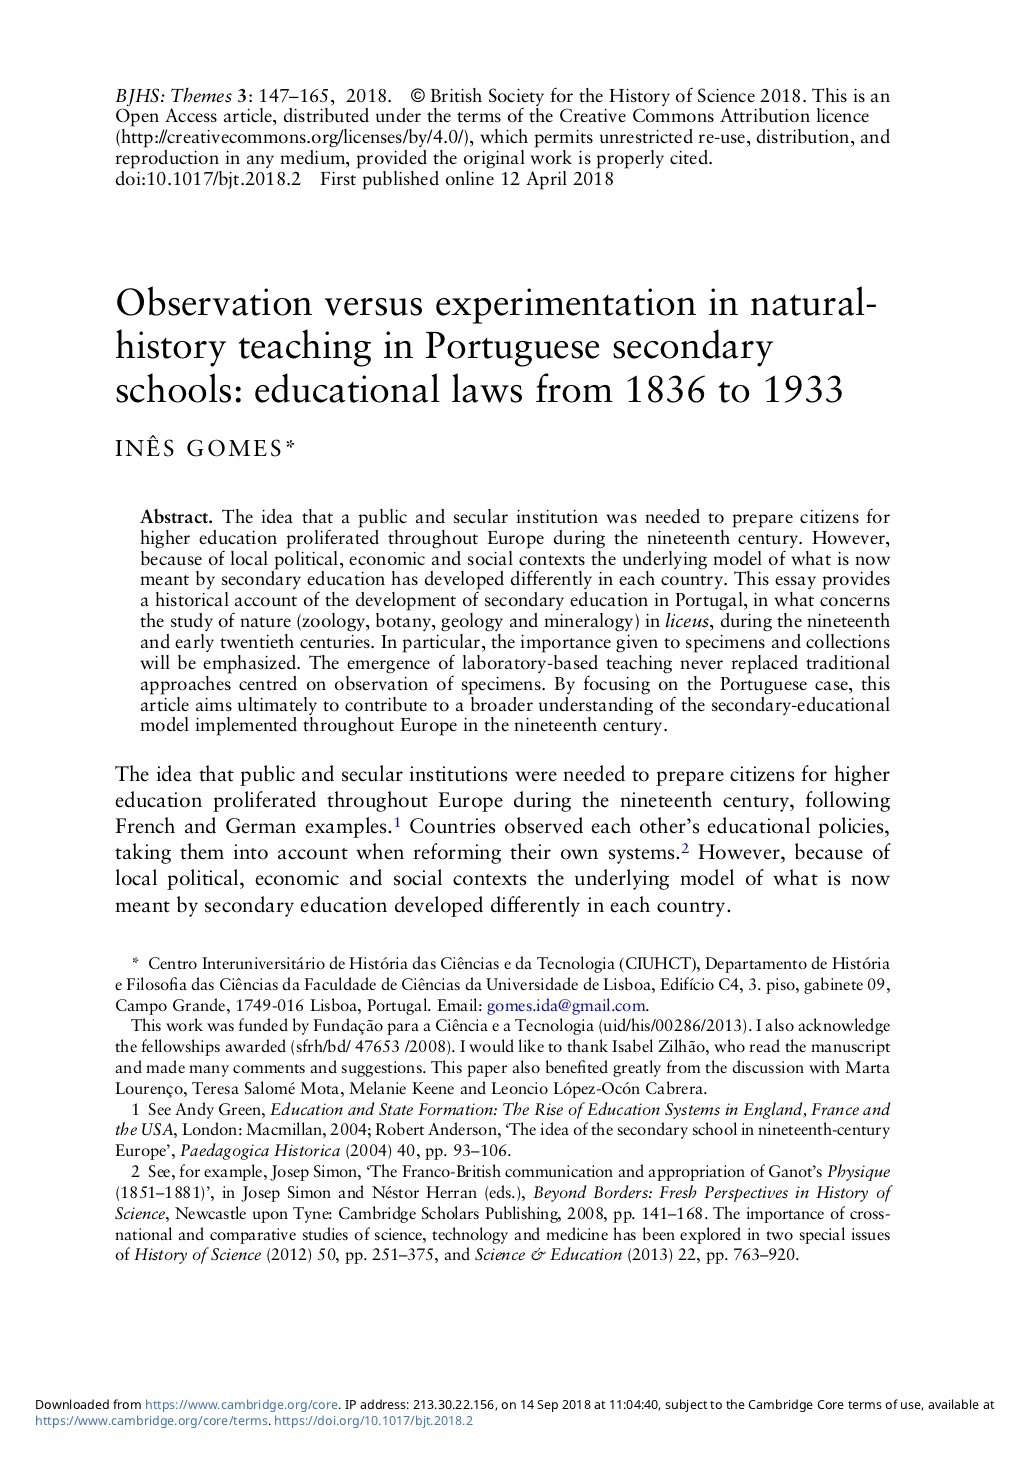 Observation versus experimentation in natural-history teaching in Portuguese secondary schools: educational laws from 1836 to 1933, Capa